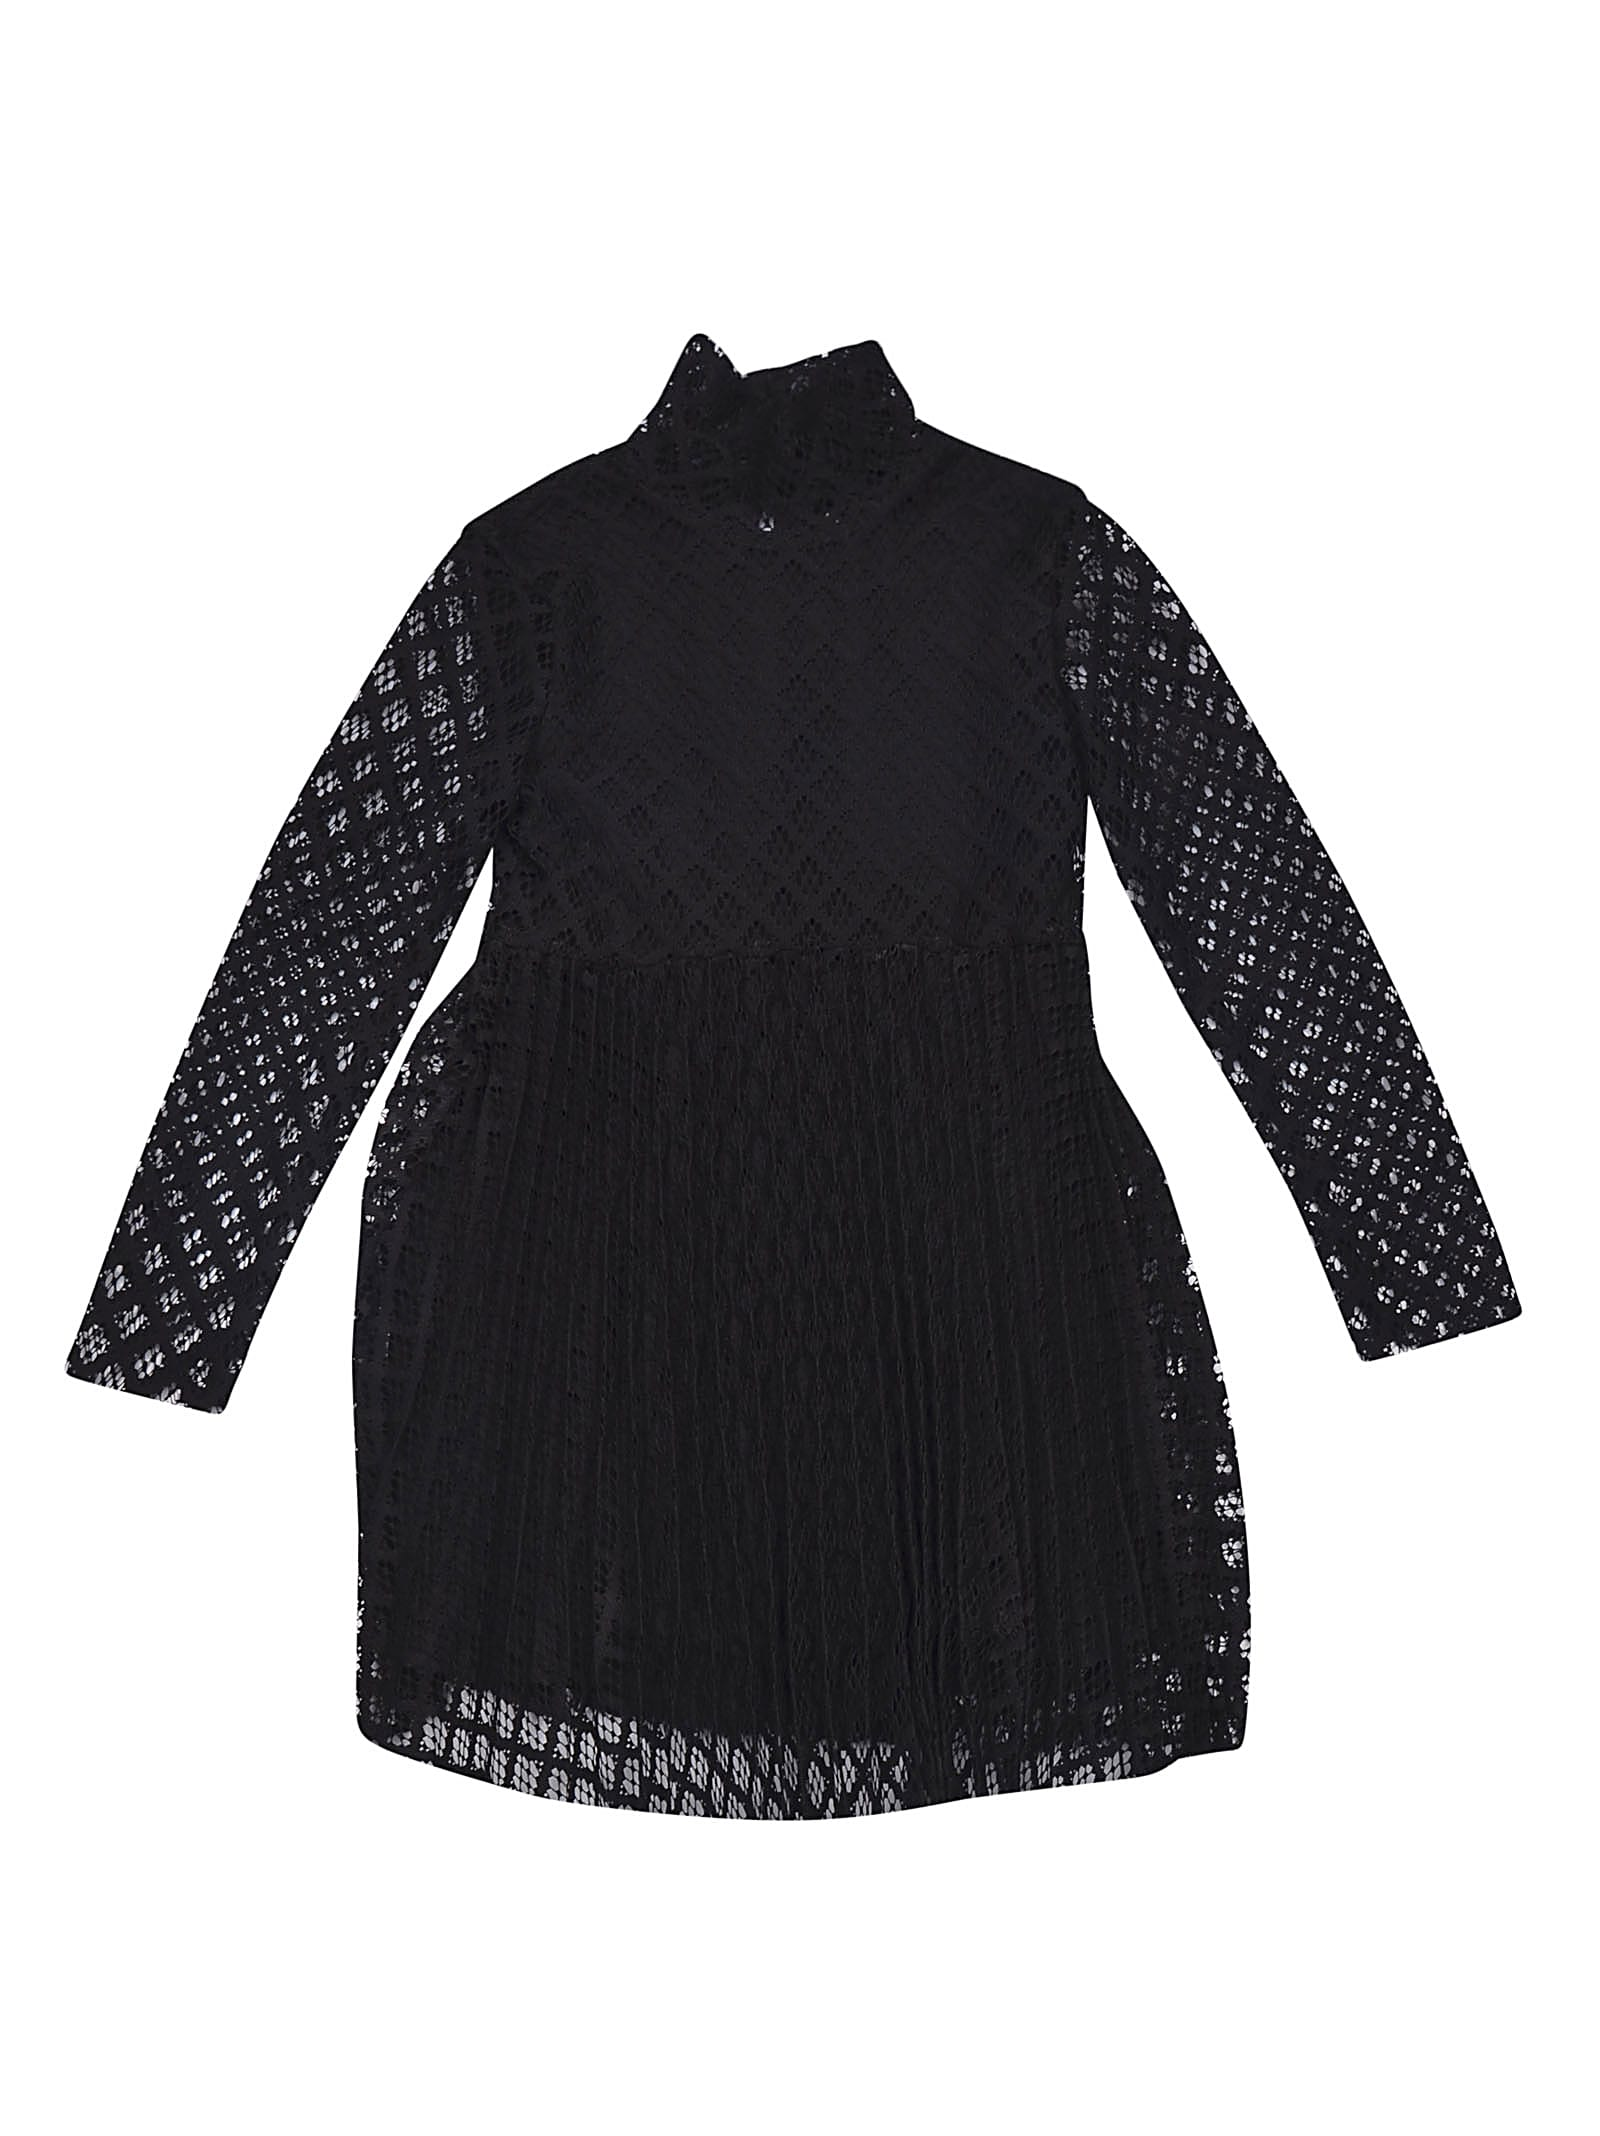 Philosophy di Lorenzo Serafini Kids Lace Dress